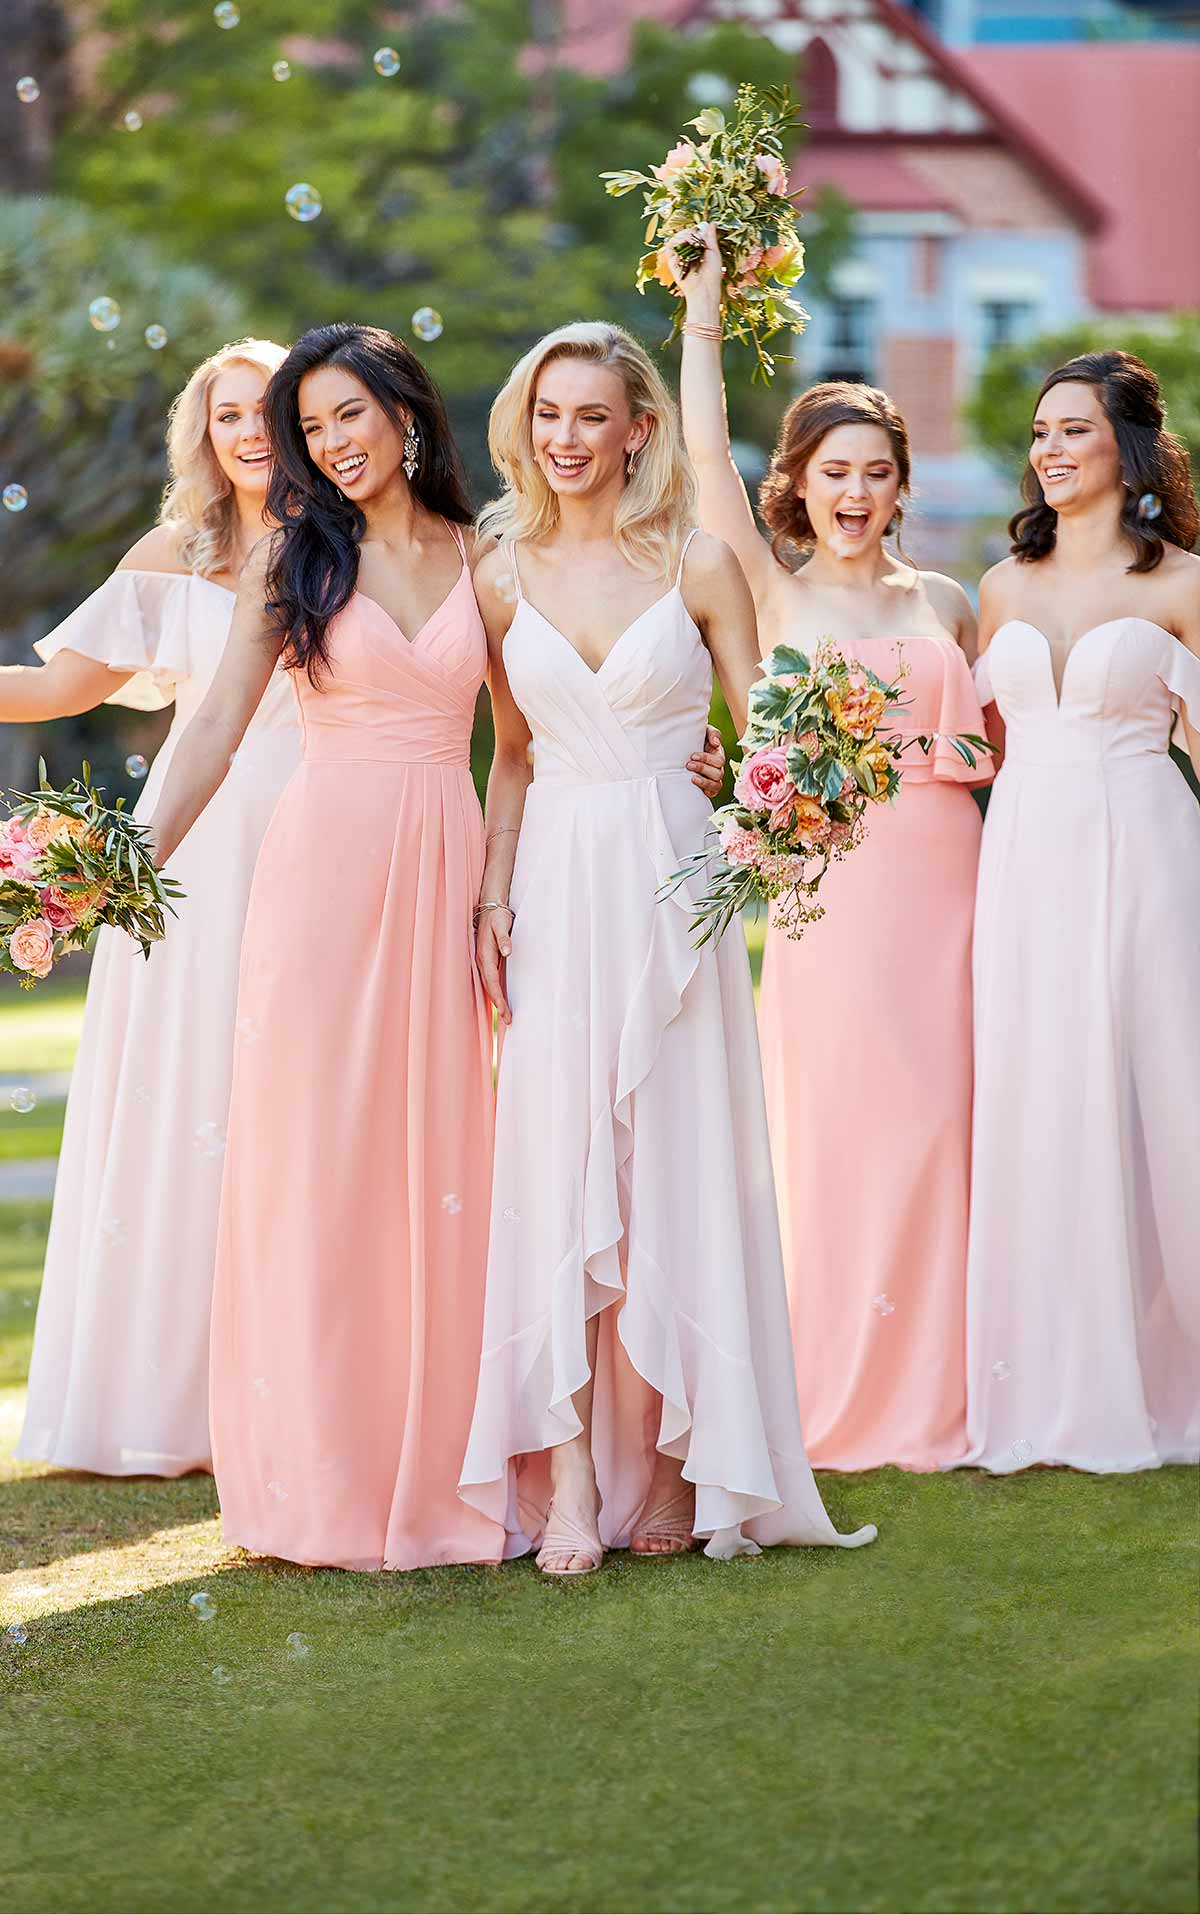 mismatched bridesmaid dresses in pink colors and different styles